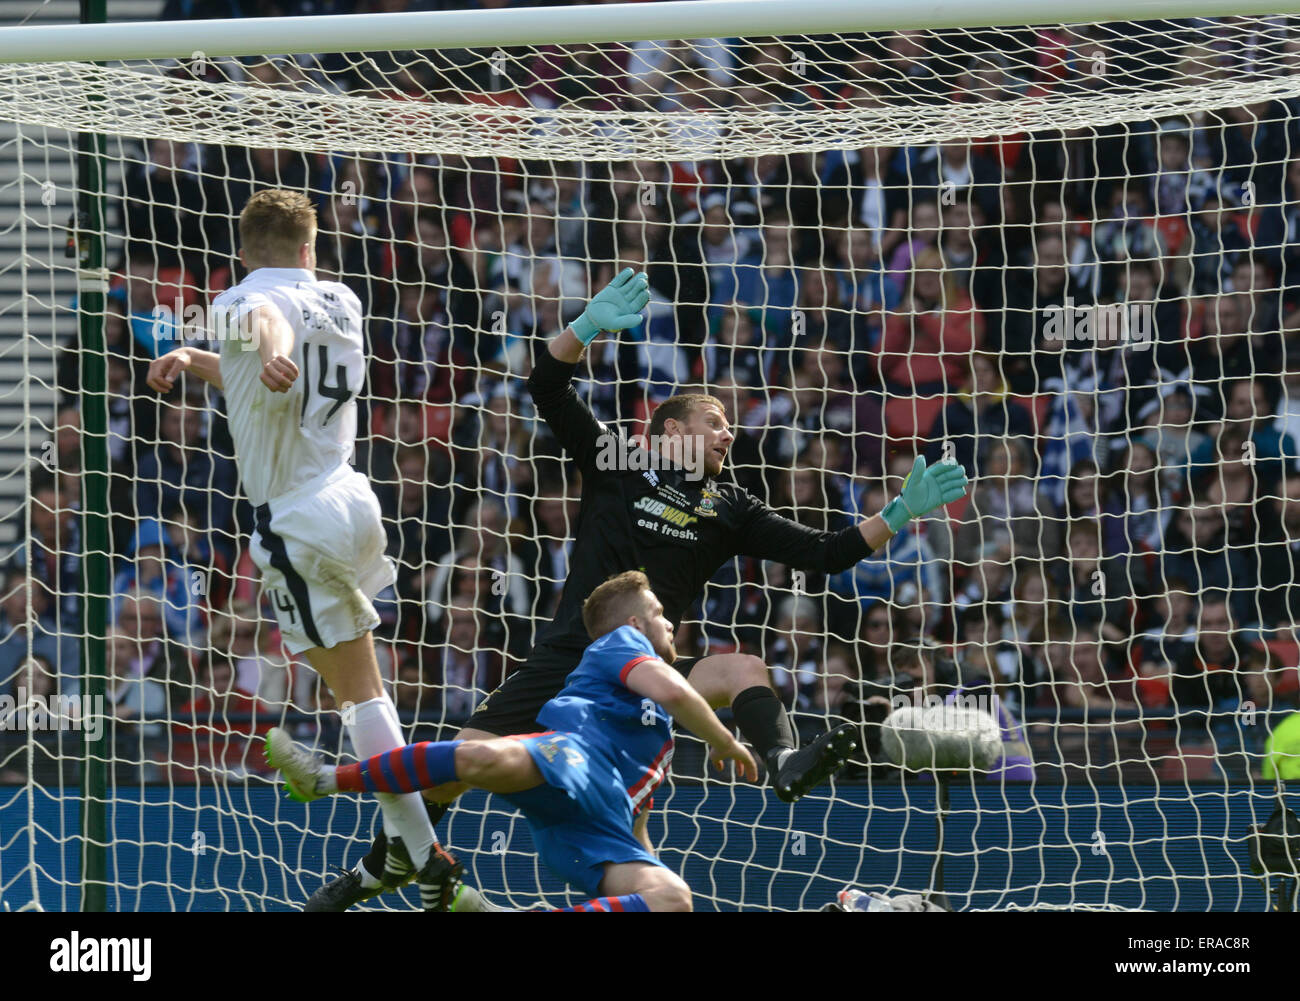 Glasgow, Scotland, UK. 30th May, 2015. Scottish Cup Final at Hampden Park, 30th of May 2015; Inverness V Falkirk. - Stock Image